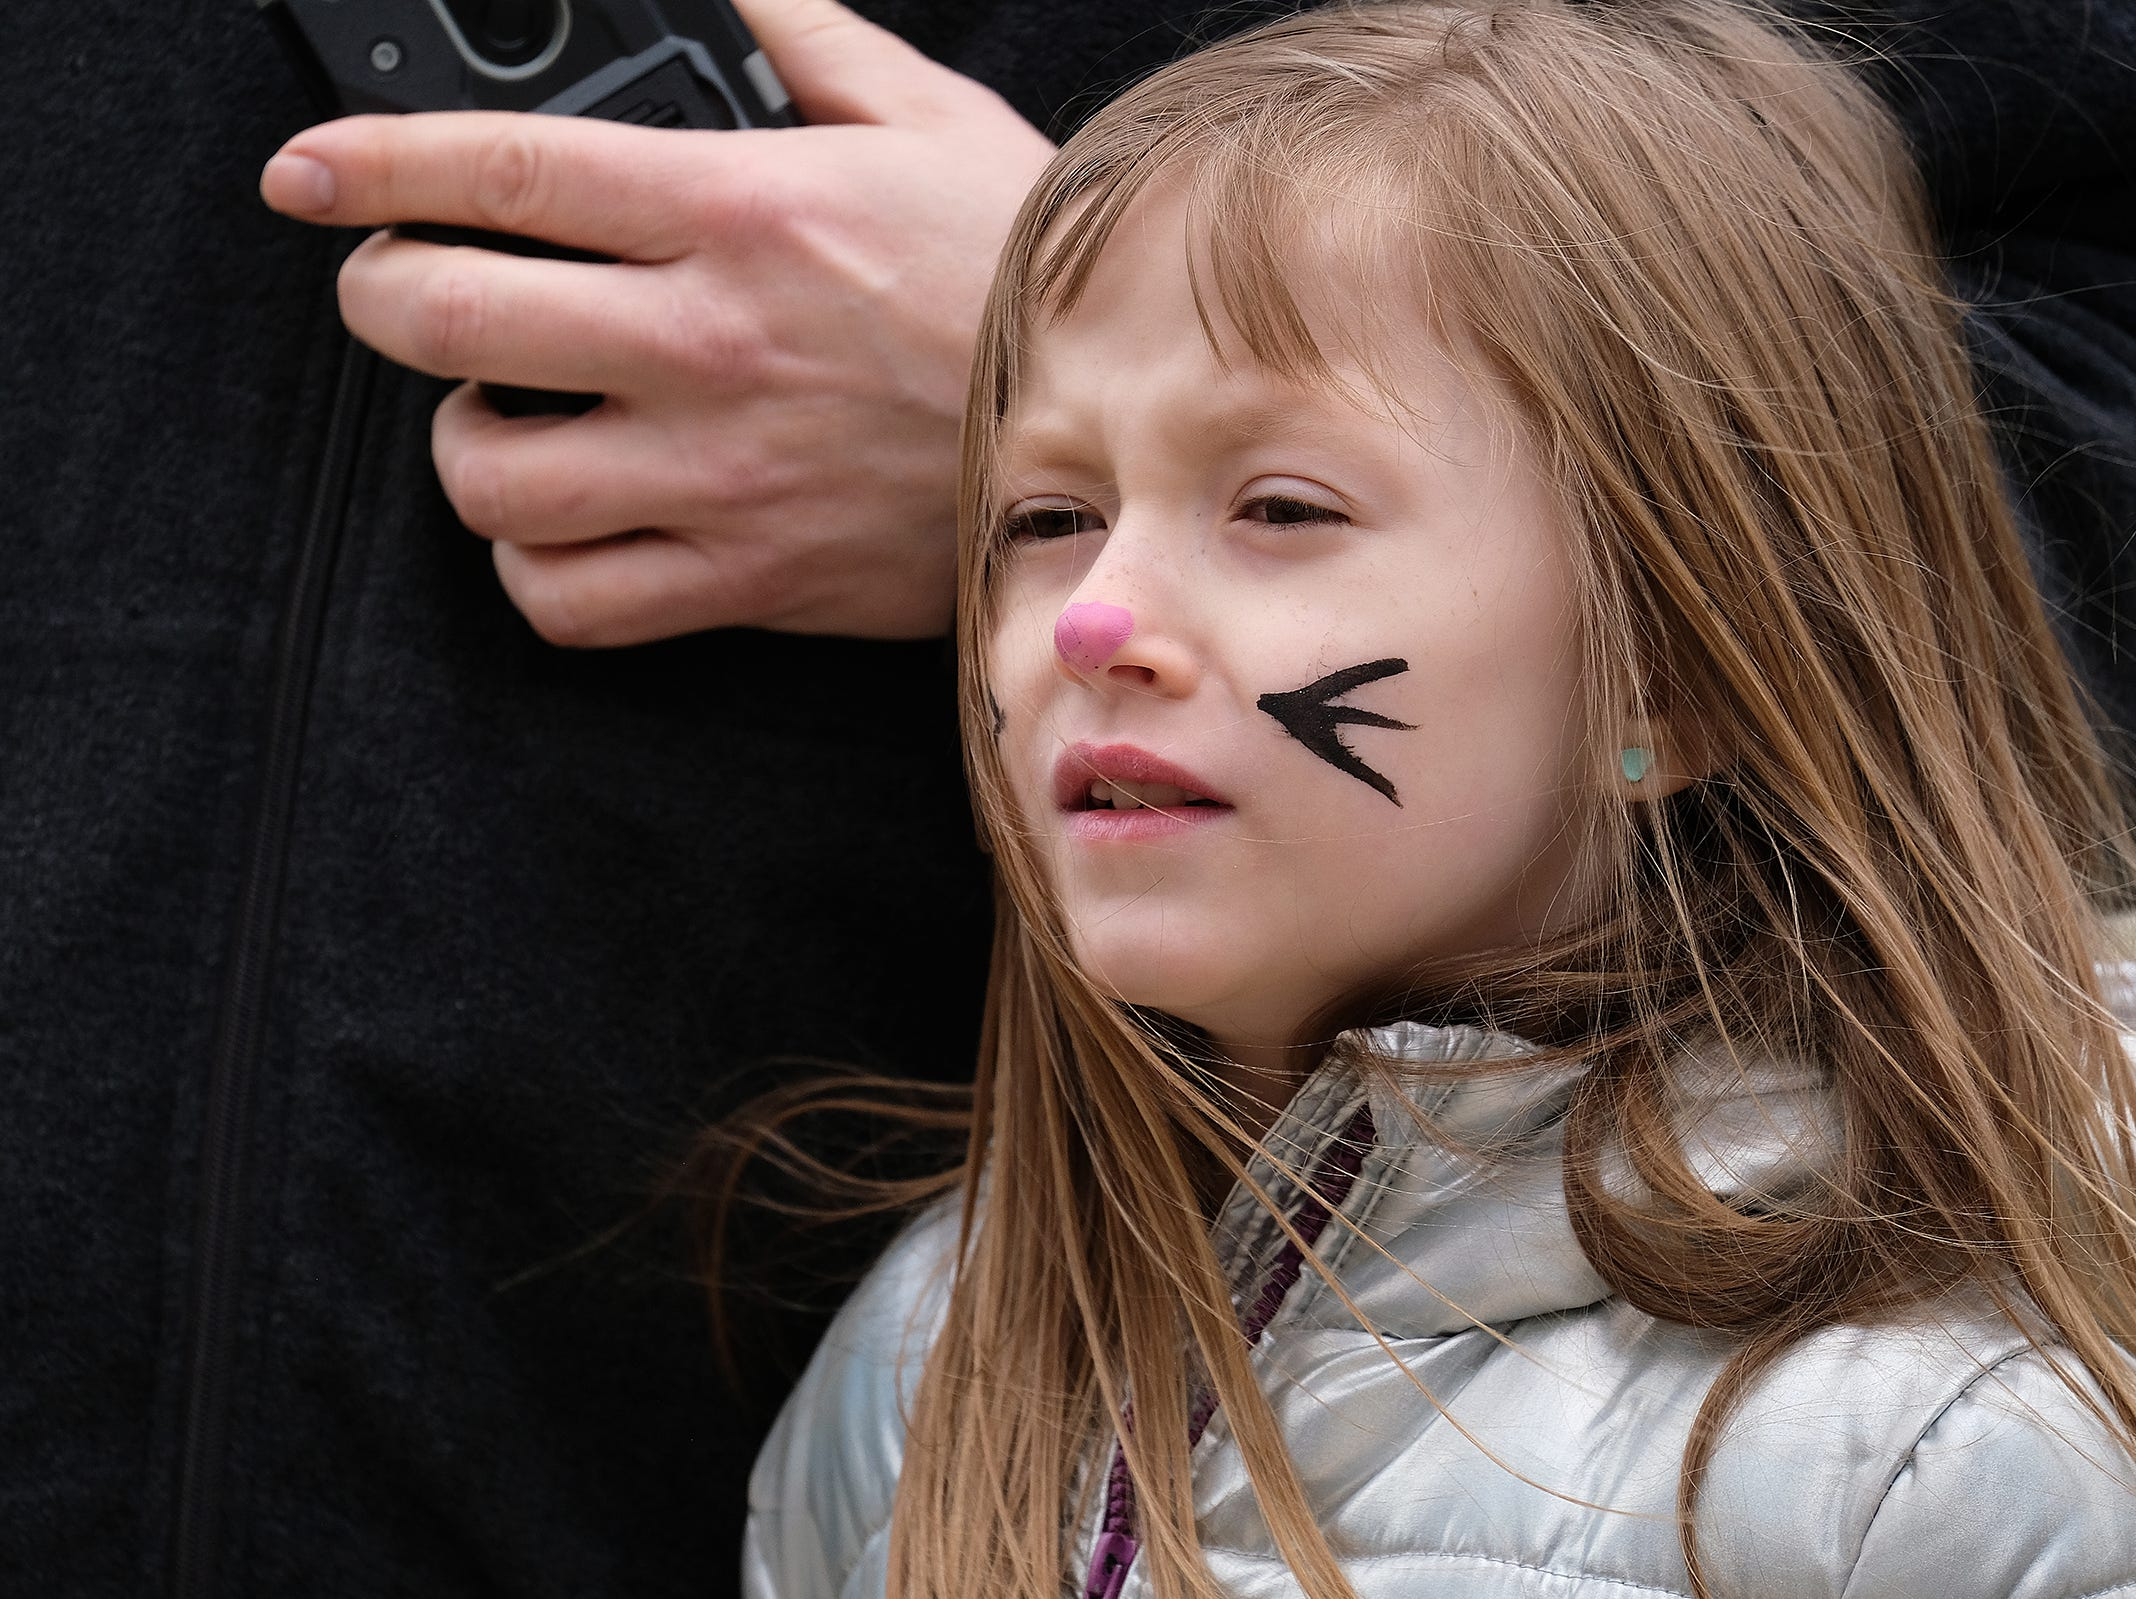 Sydney Sharp, 8, from Lansing, watches some line dancing going on at the annual Lansing Jaycees Easter Egg Hunt at the Capitol Saturday, April 20, 2019.